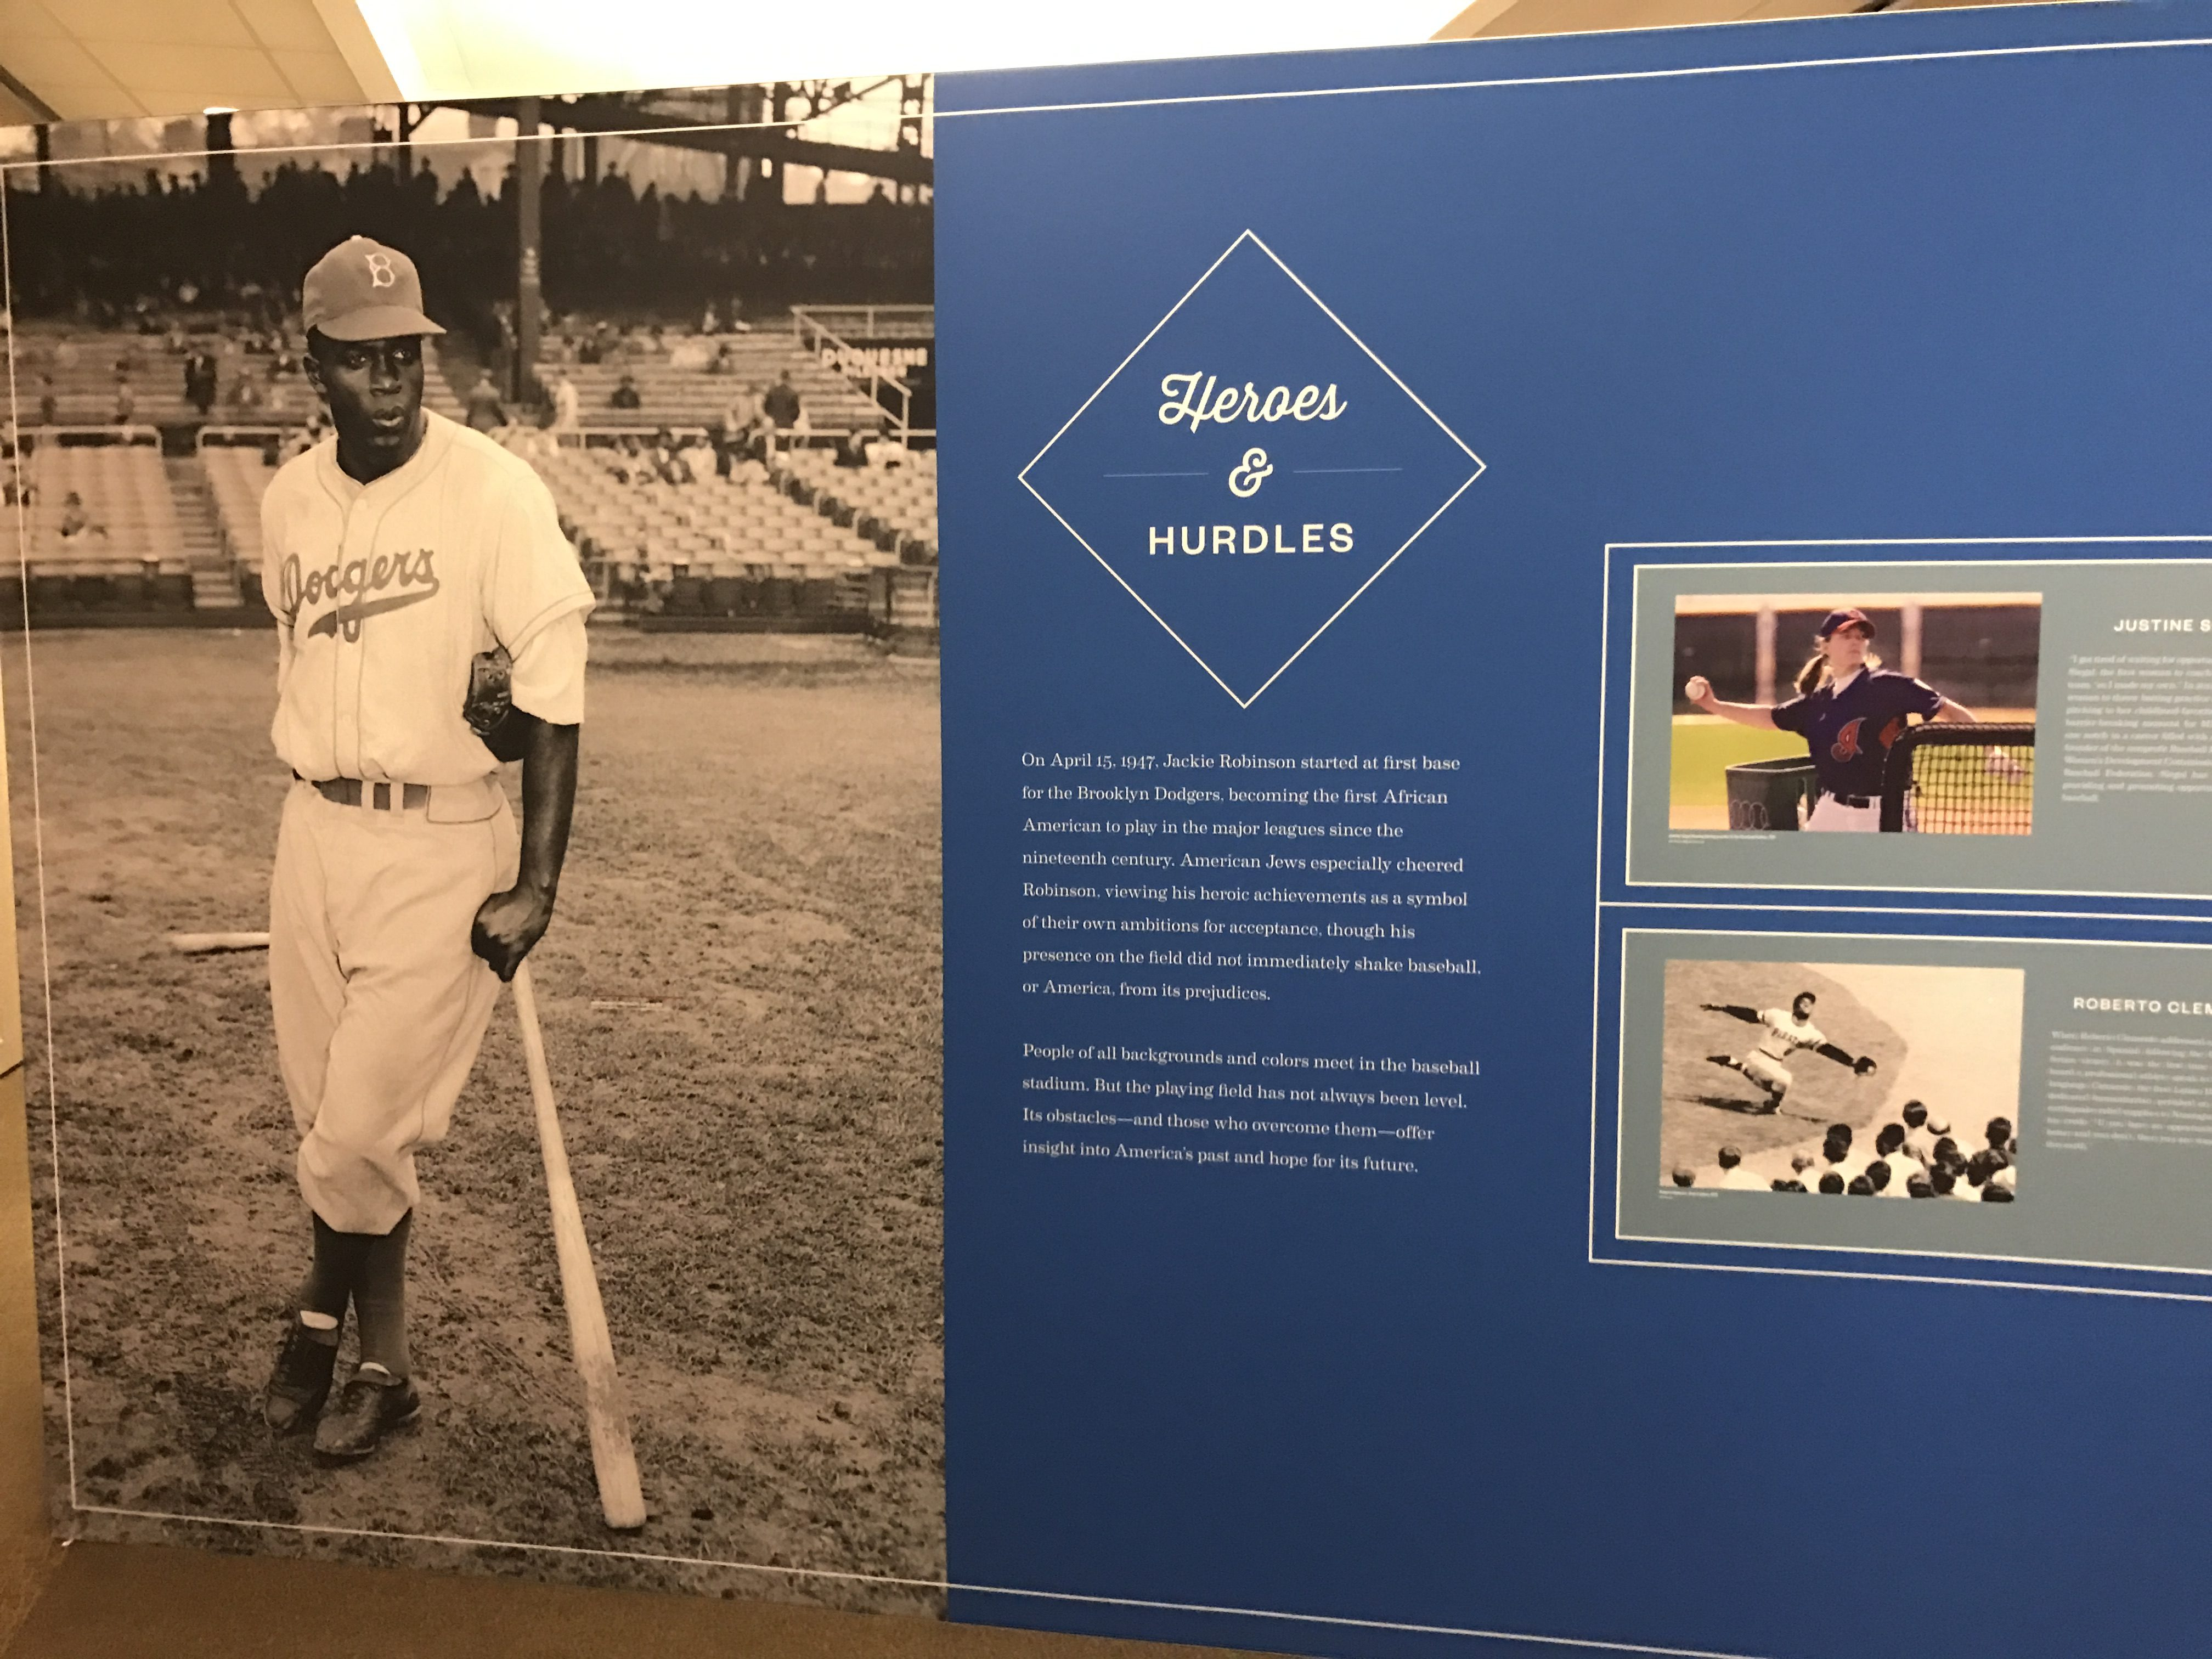 jackie robinson s life struggles and overcoming adversity As americans readjusted to life after returning from world war ii,  in burns's  documentary, rachel robinson, jackie's widow, recounts the ordeal the  as  one man who triumphed over adversity—a lone trailblazer who broke  part and  parcel of the nation's broader struggle for civil rights and social justice.